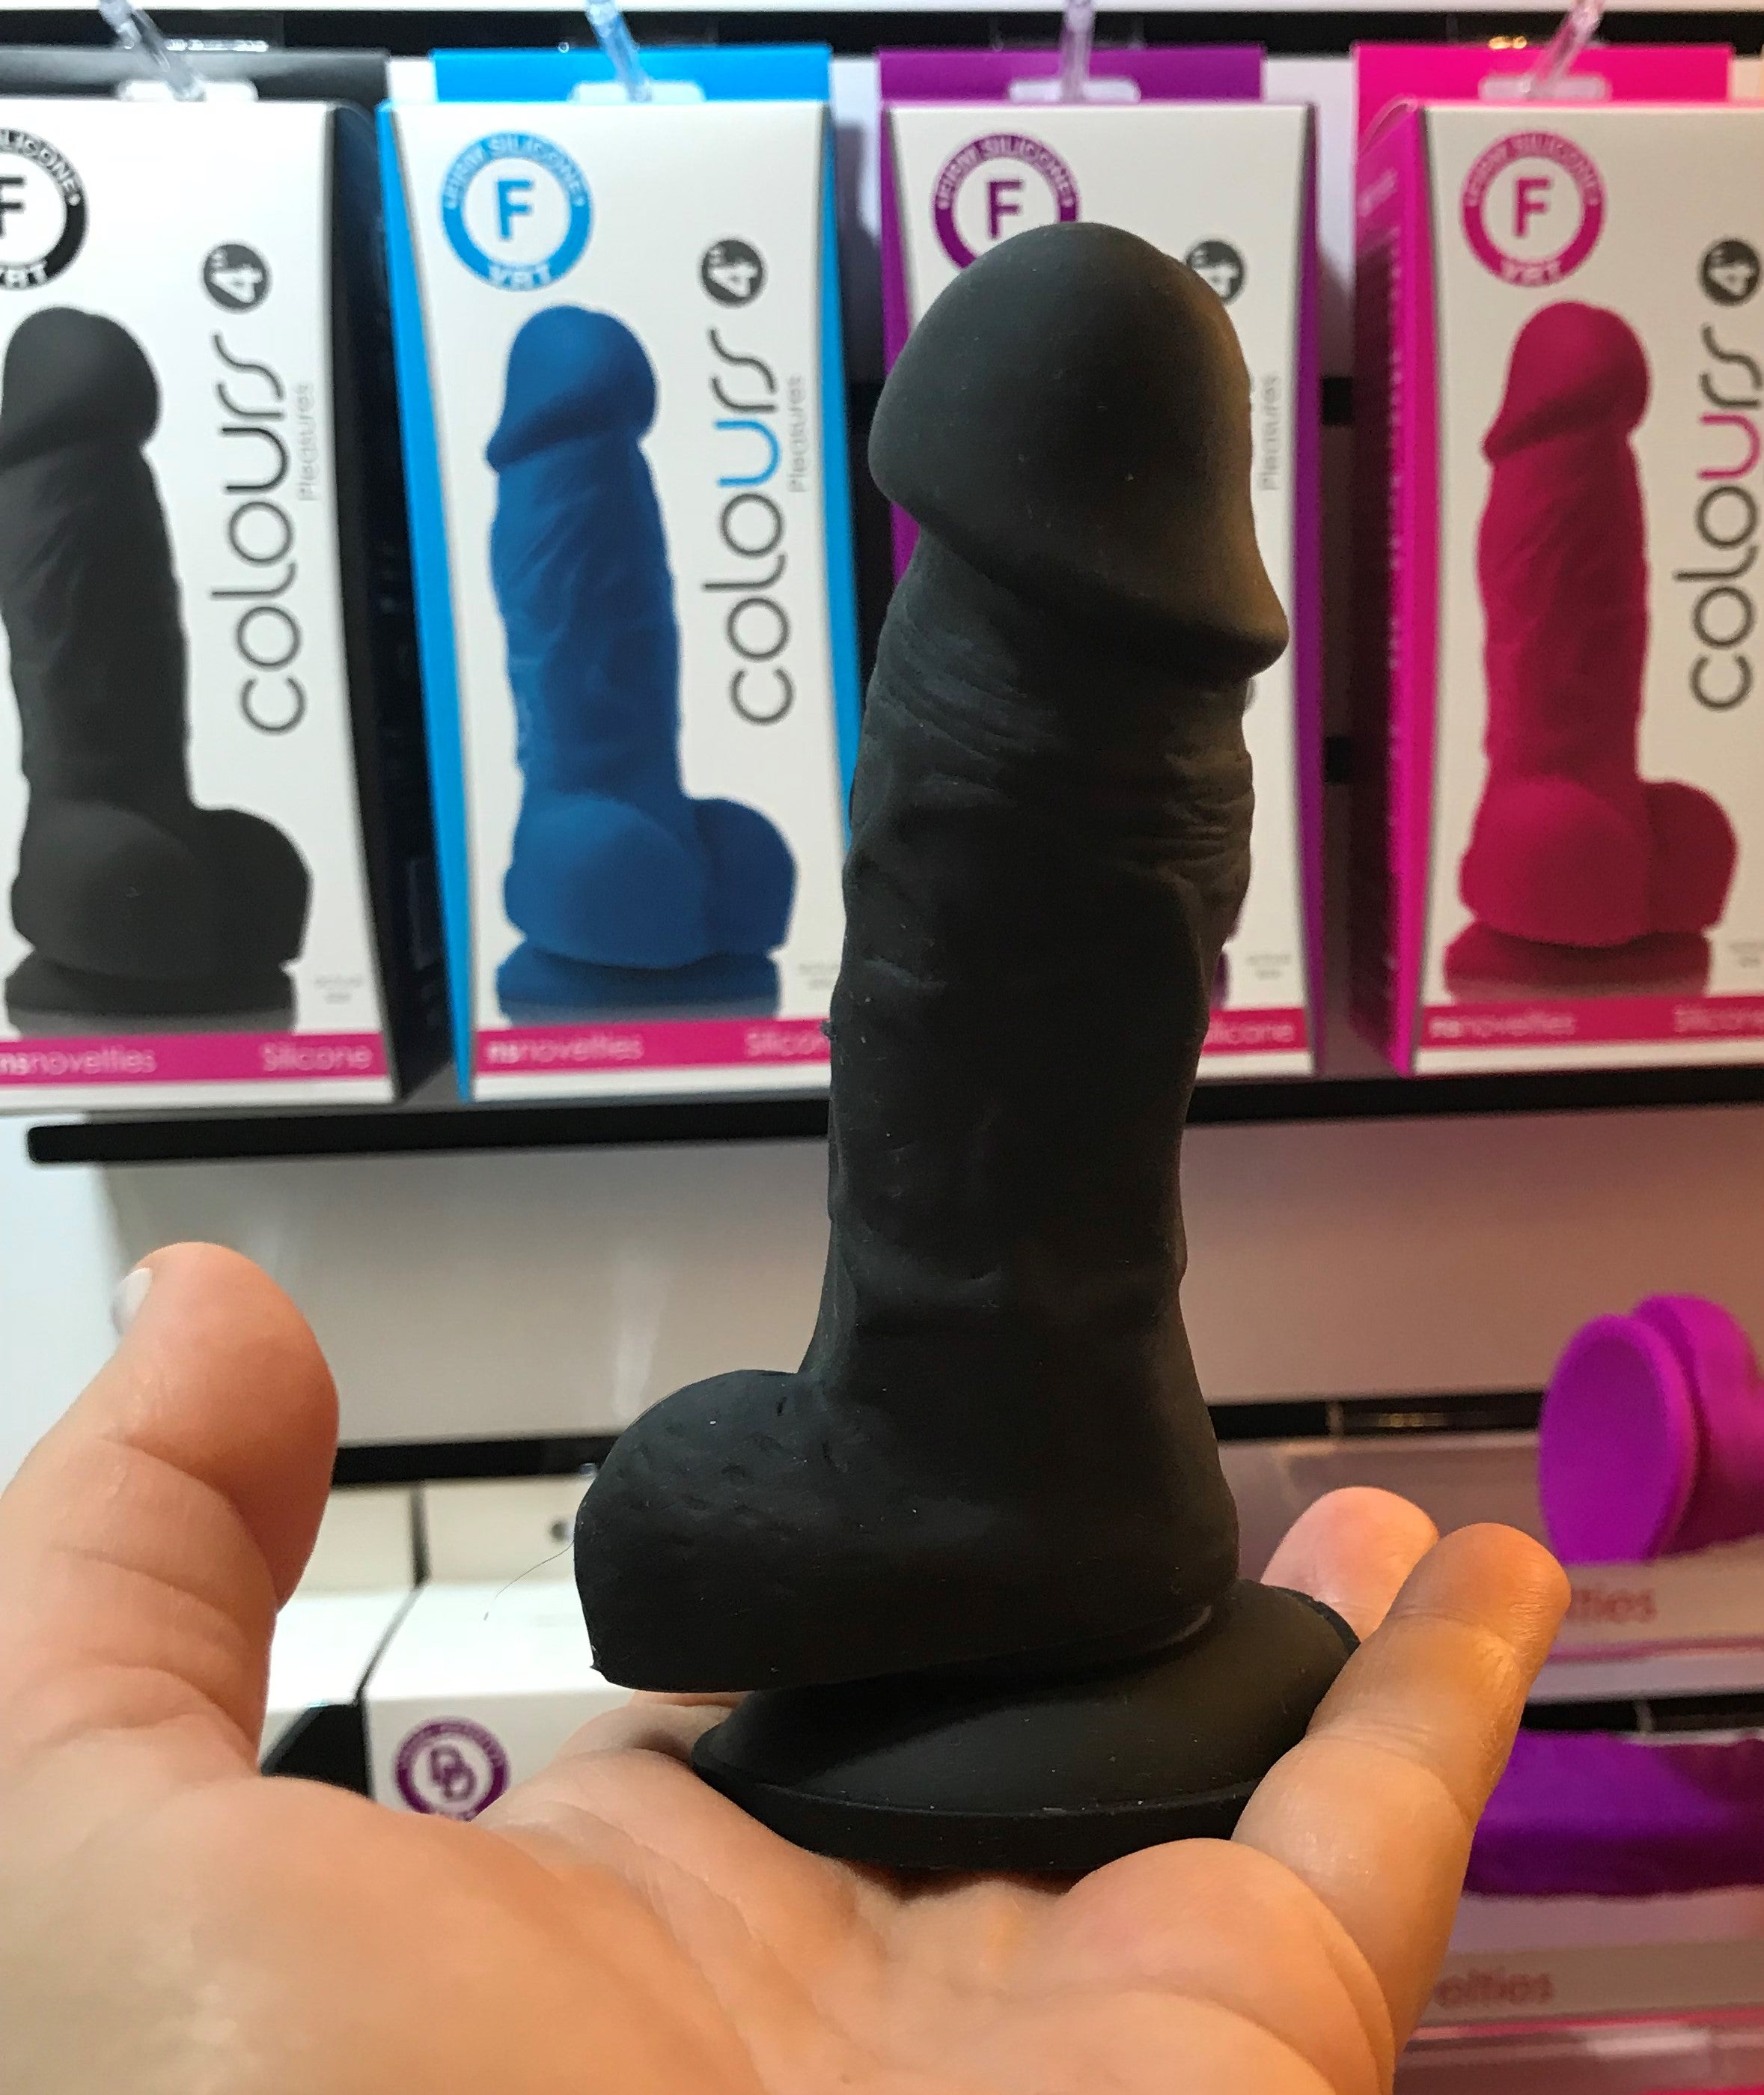 Colours Pleasures Realistic 4 Inch Silicone Dildo by NS Novelties - black  dildo held in the palm of a hand to illustrate the petite size